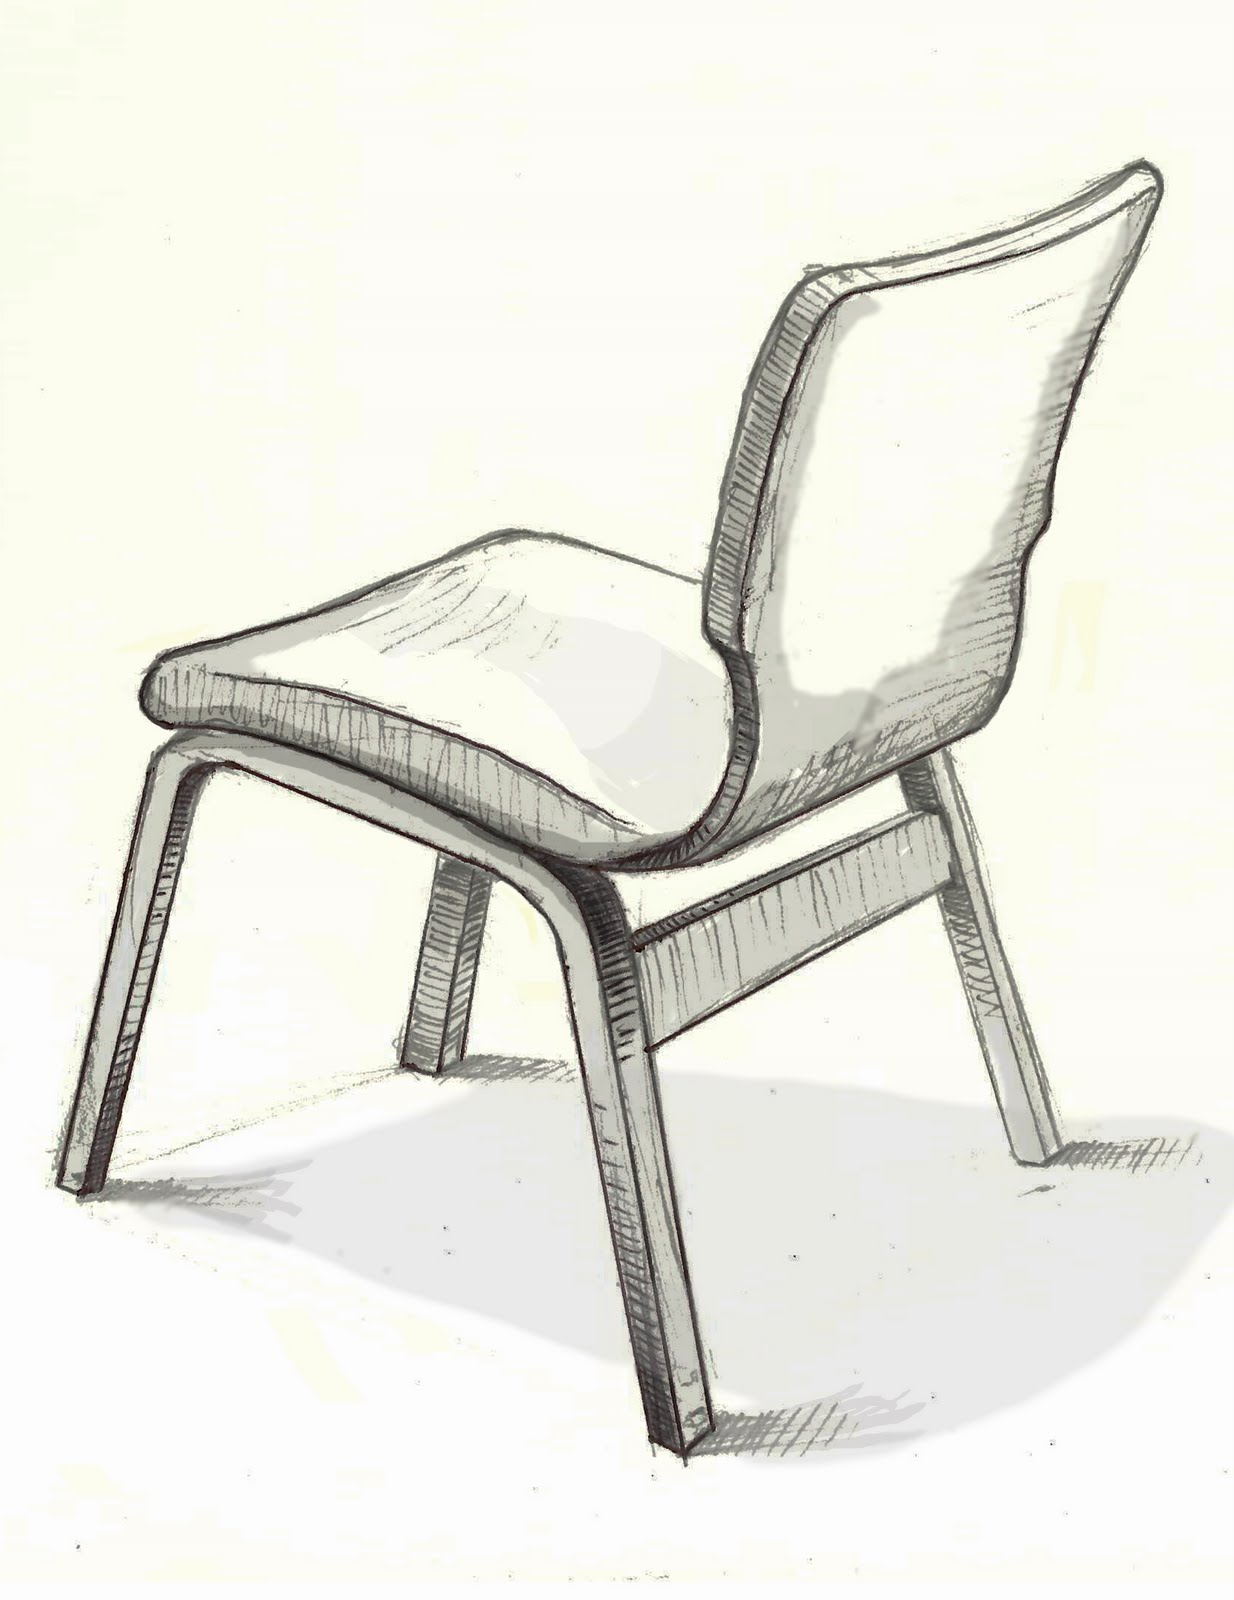 Simple Chair Sketches - Chair sketch sketches for fumco